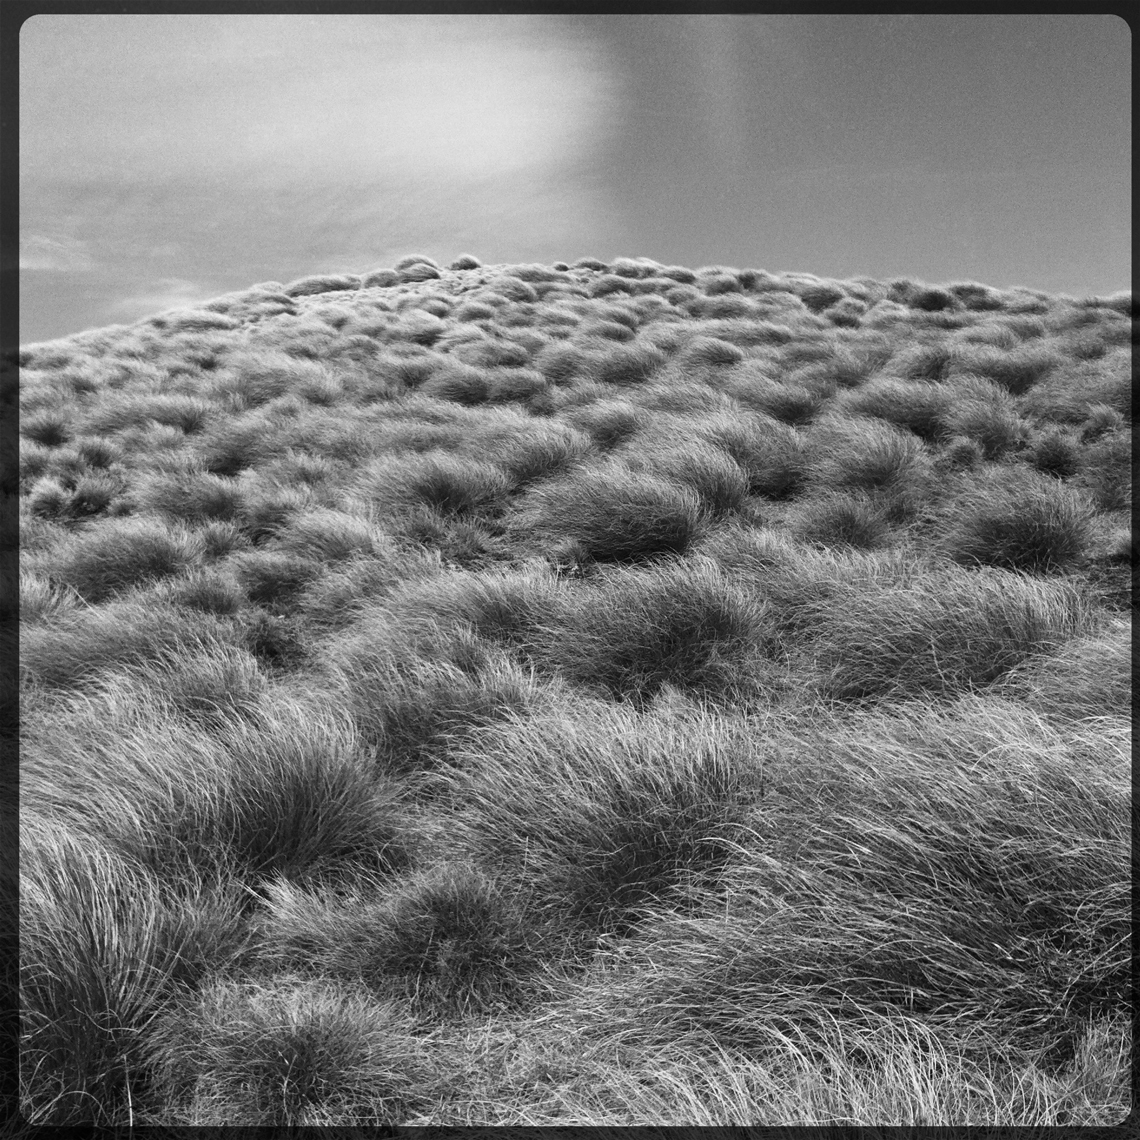 Jon Wyatt Photography - grasses in New Zealand. Hipstamatic